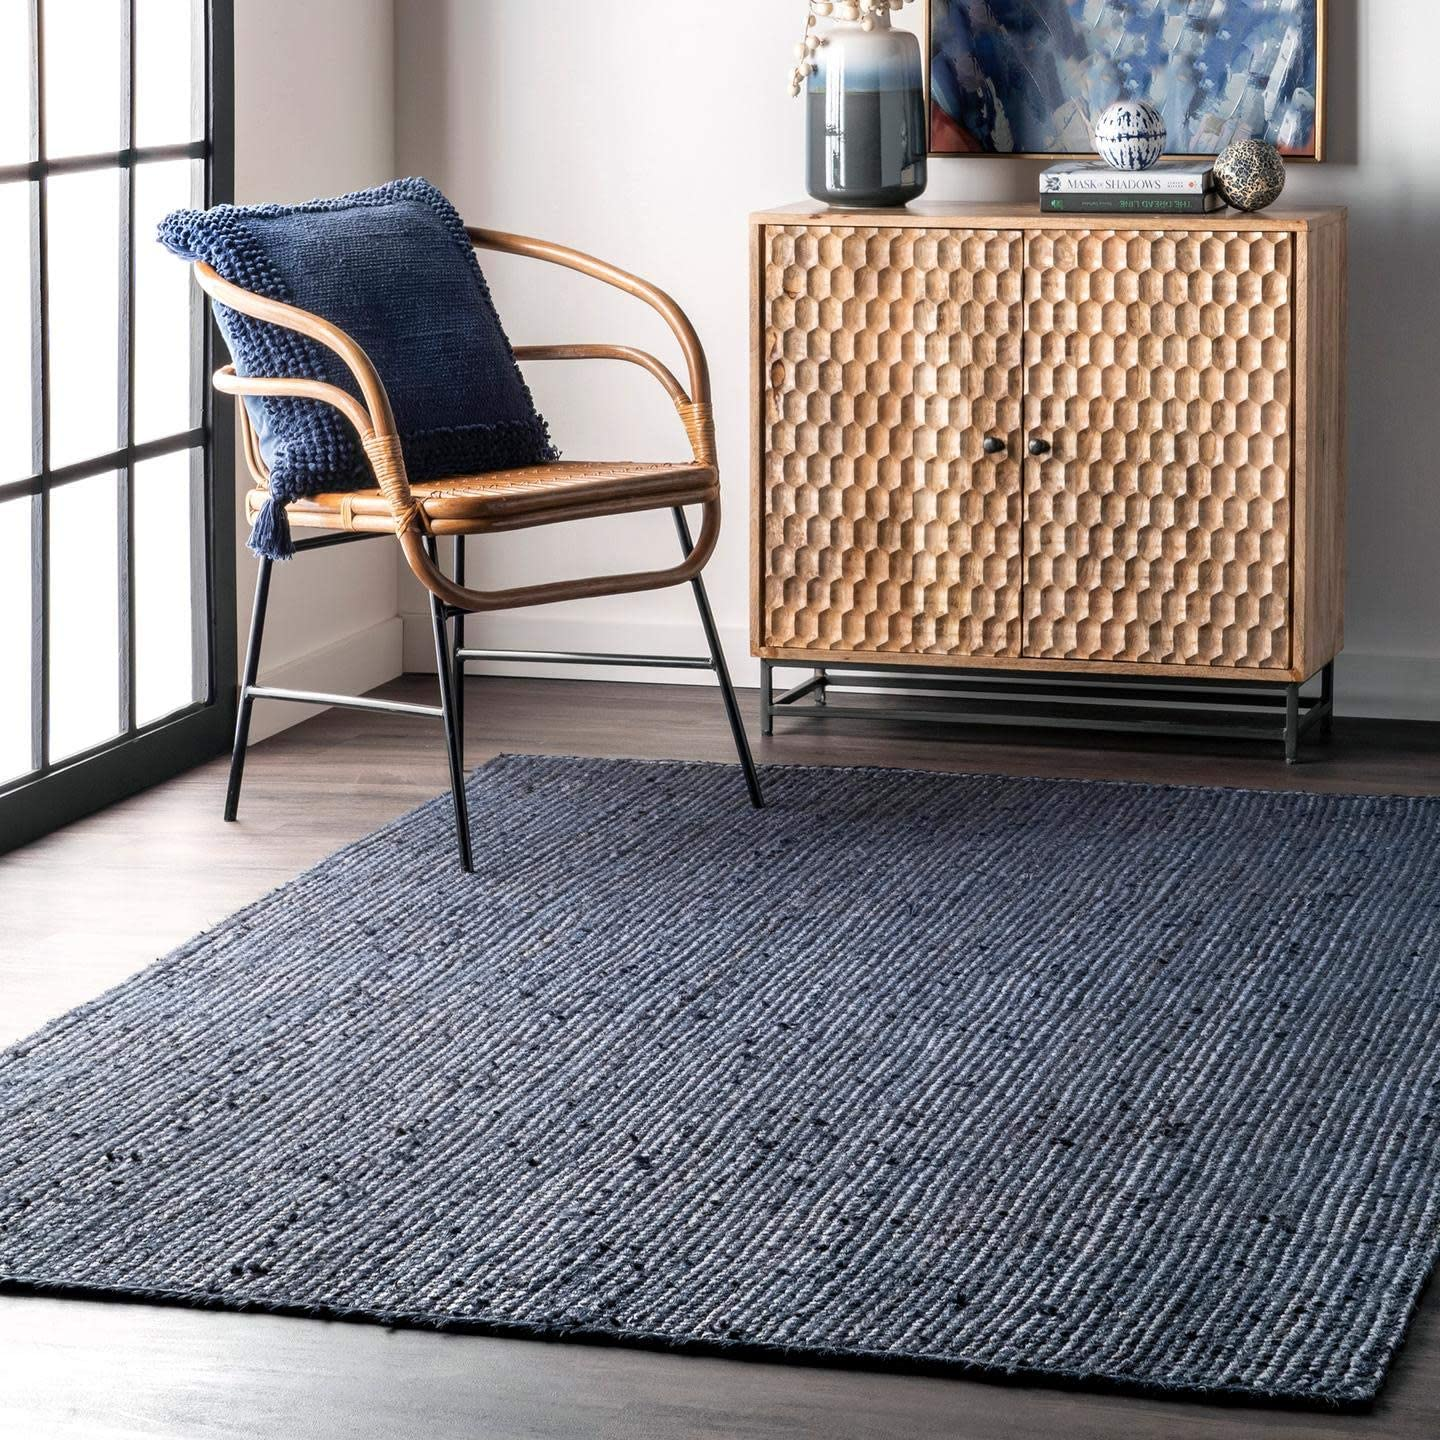 nuLOOM Rigo Hand Woven Jute Accent OFFicial Rug Inexpensive Navy x 2' 3'